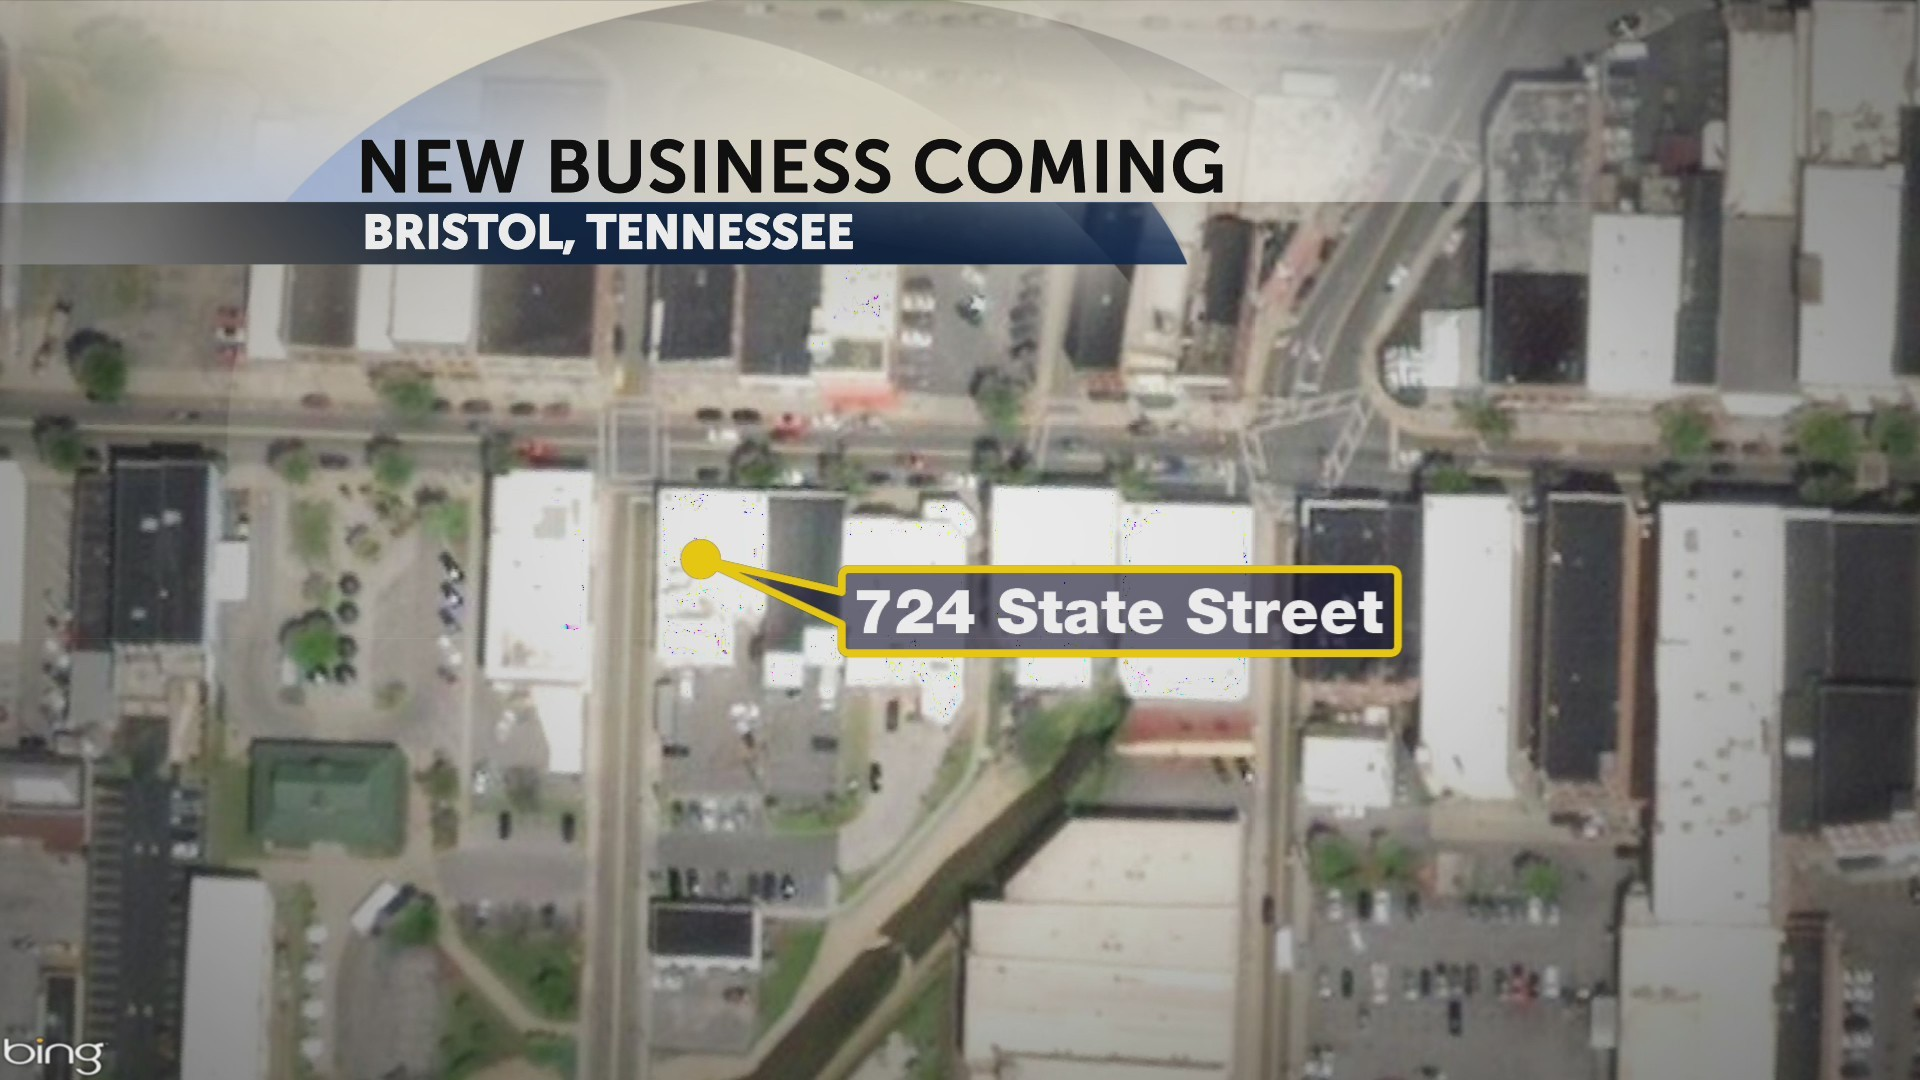 New Bristol business to be announced Wednesday morning